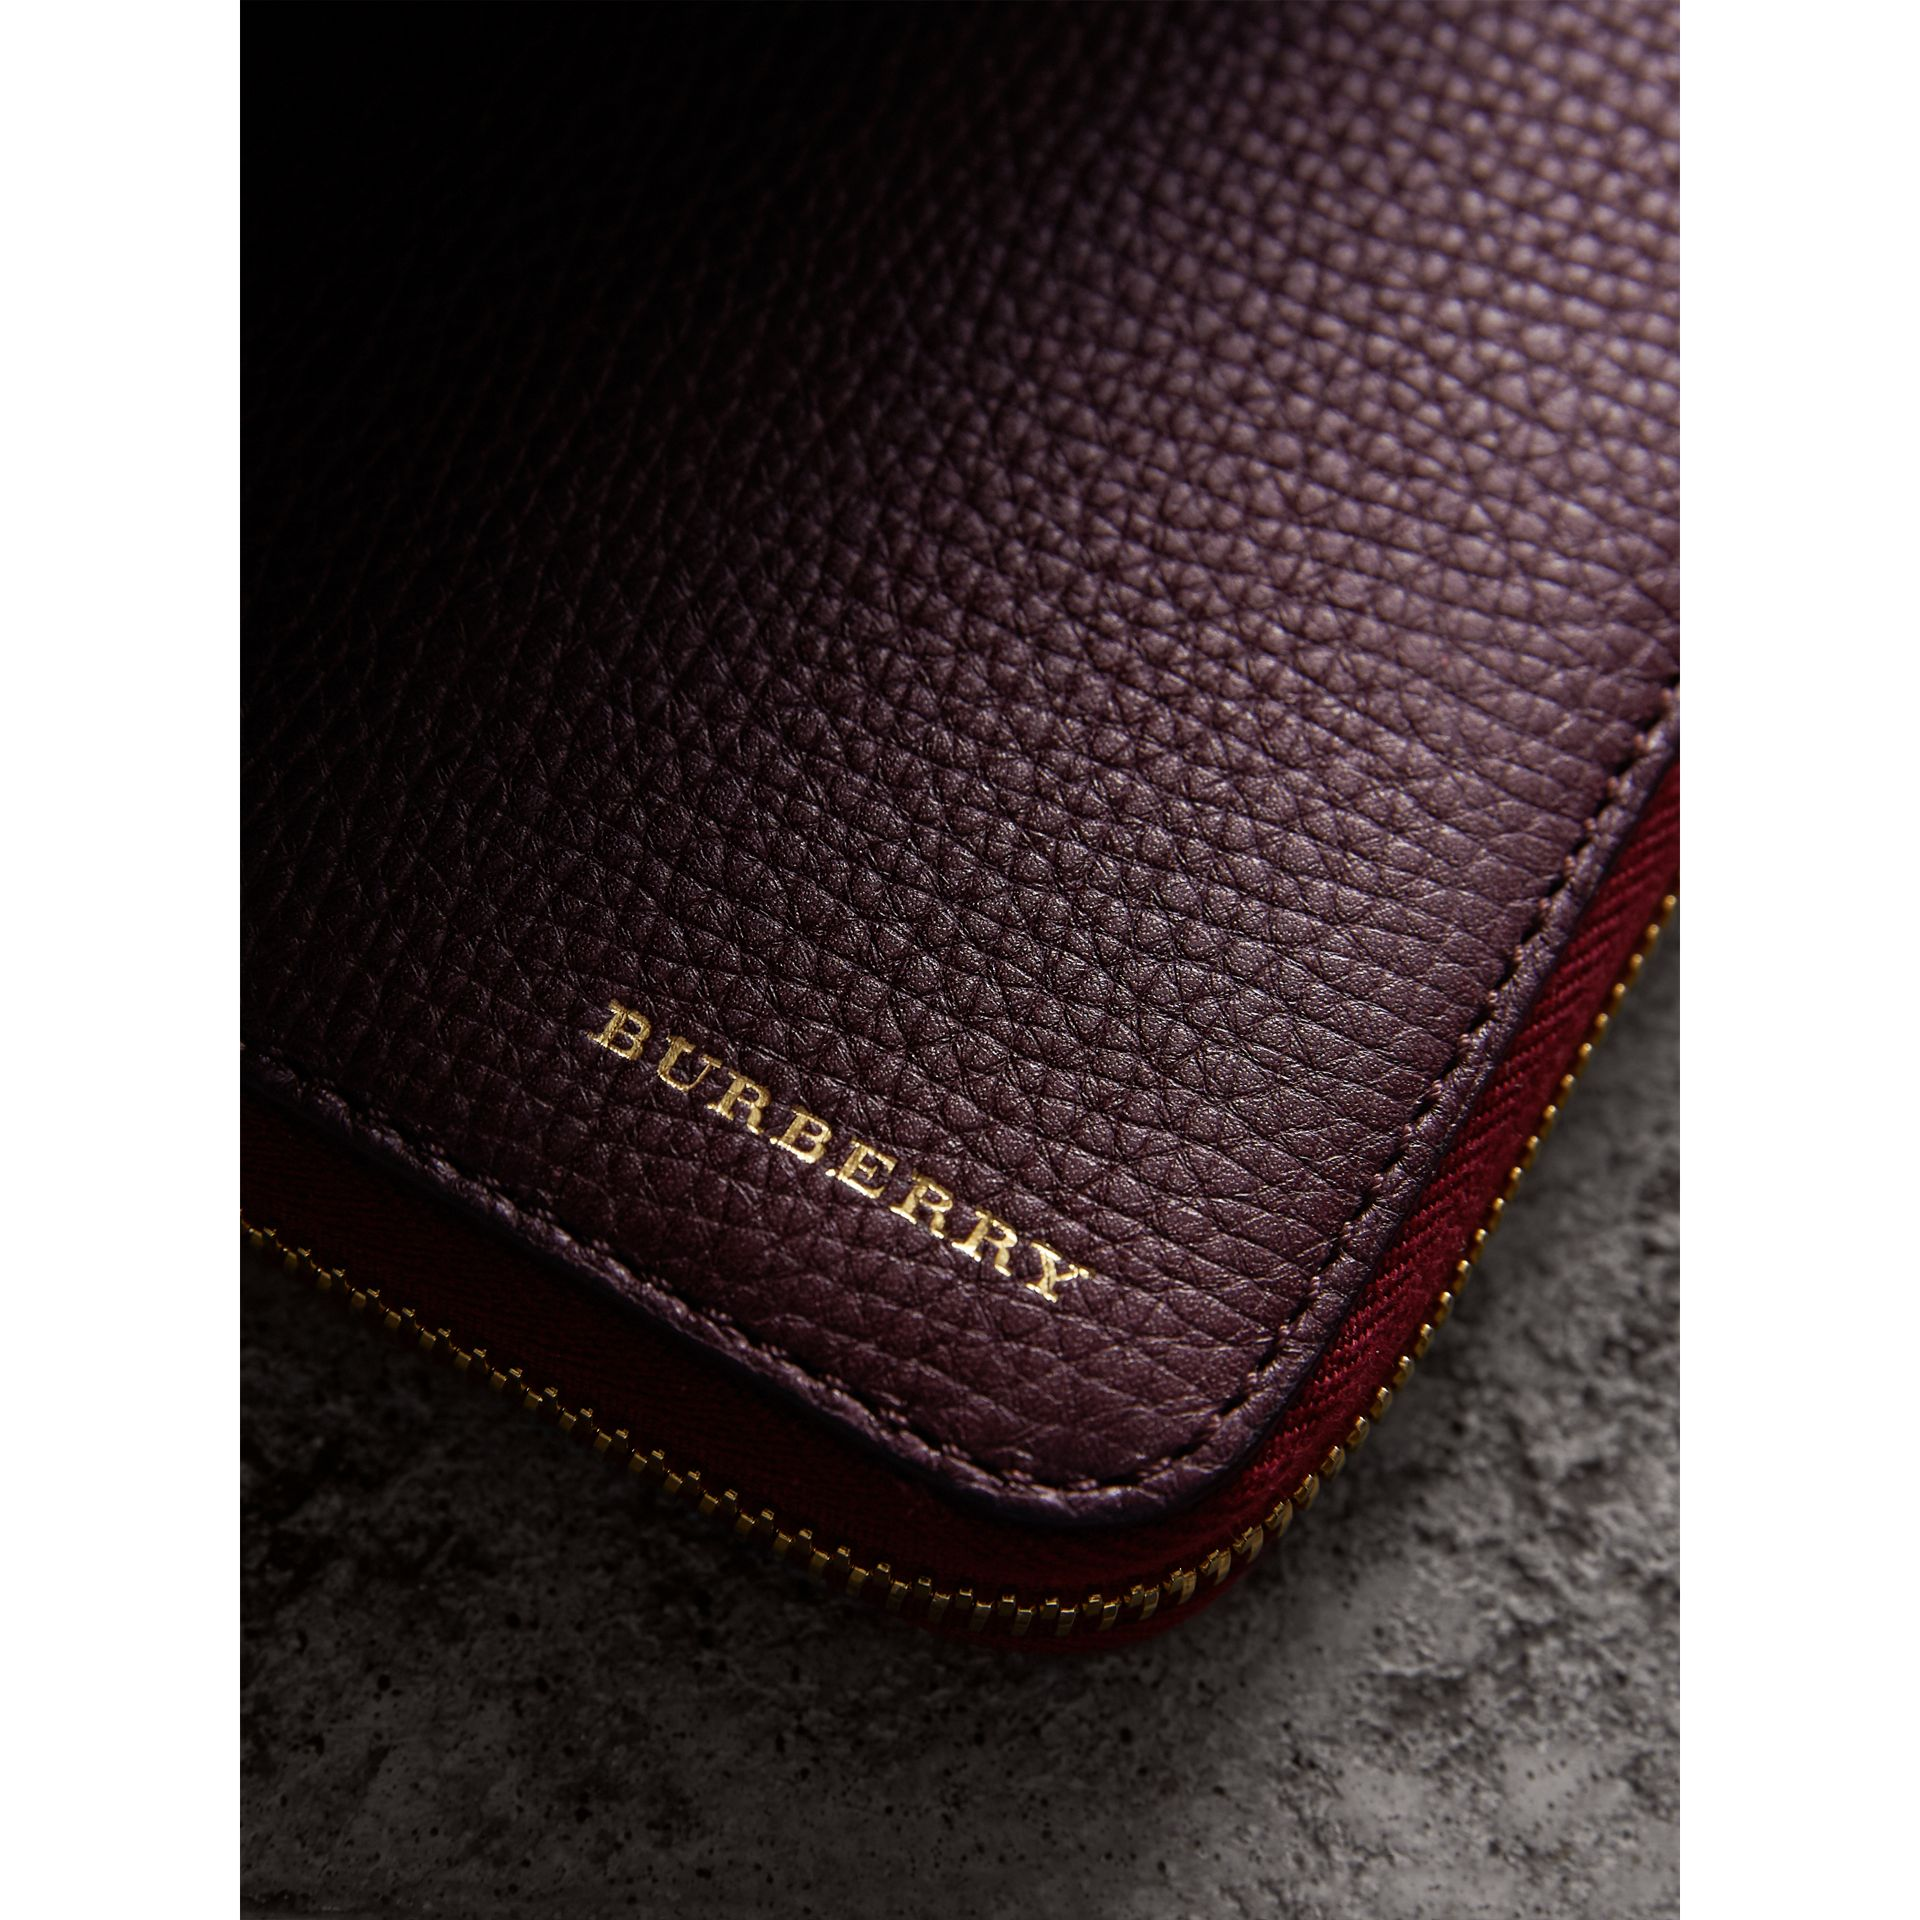 House Check and Grainy Leather Ziparound Wallet in Wine | Burberry - gallery image 2